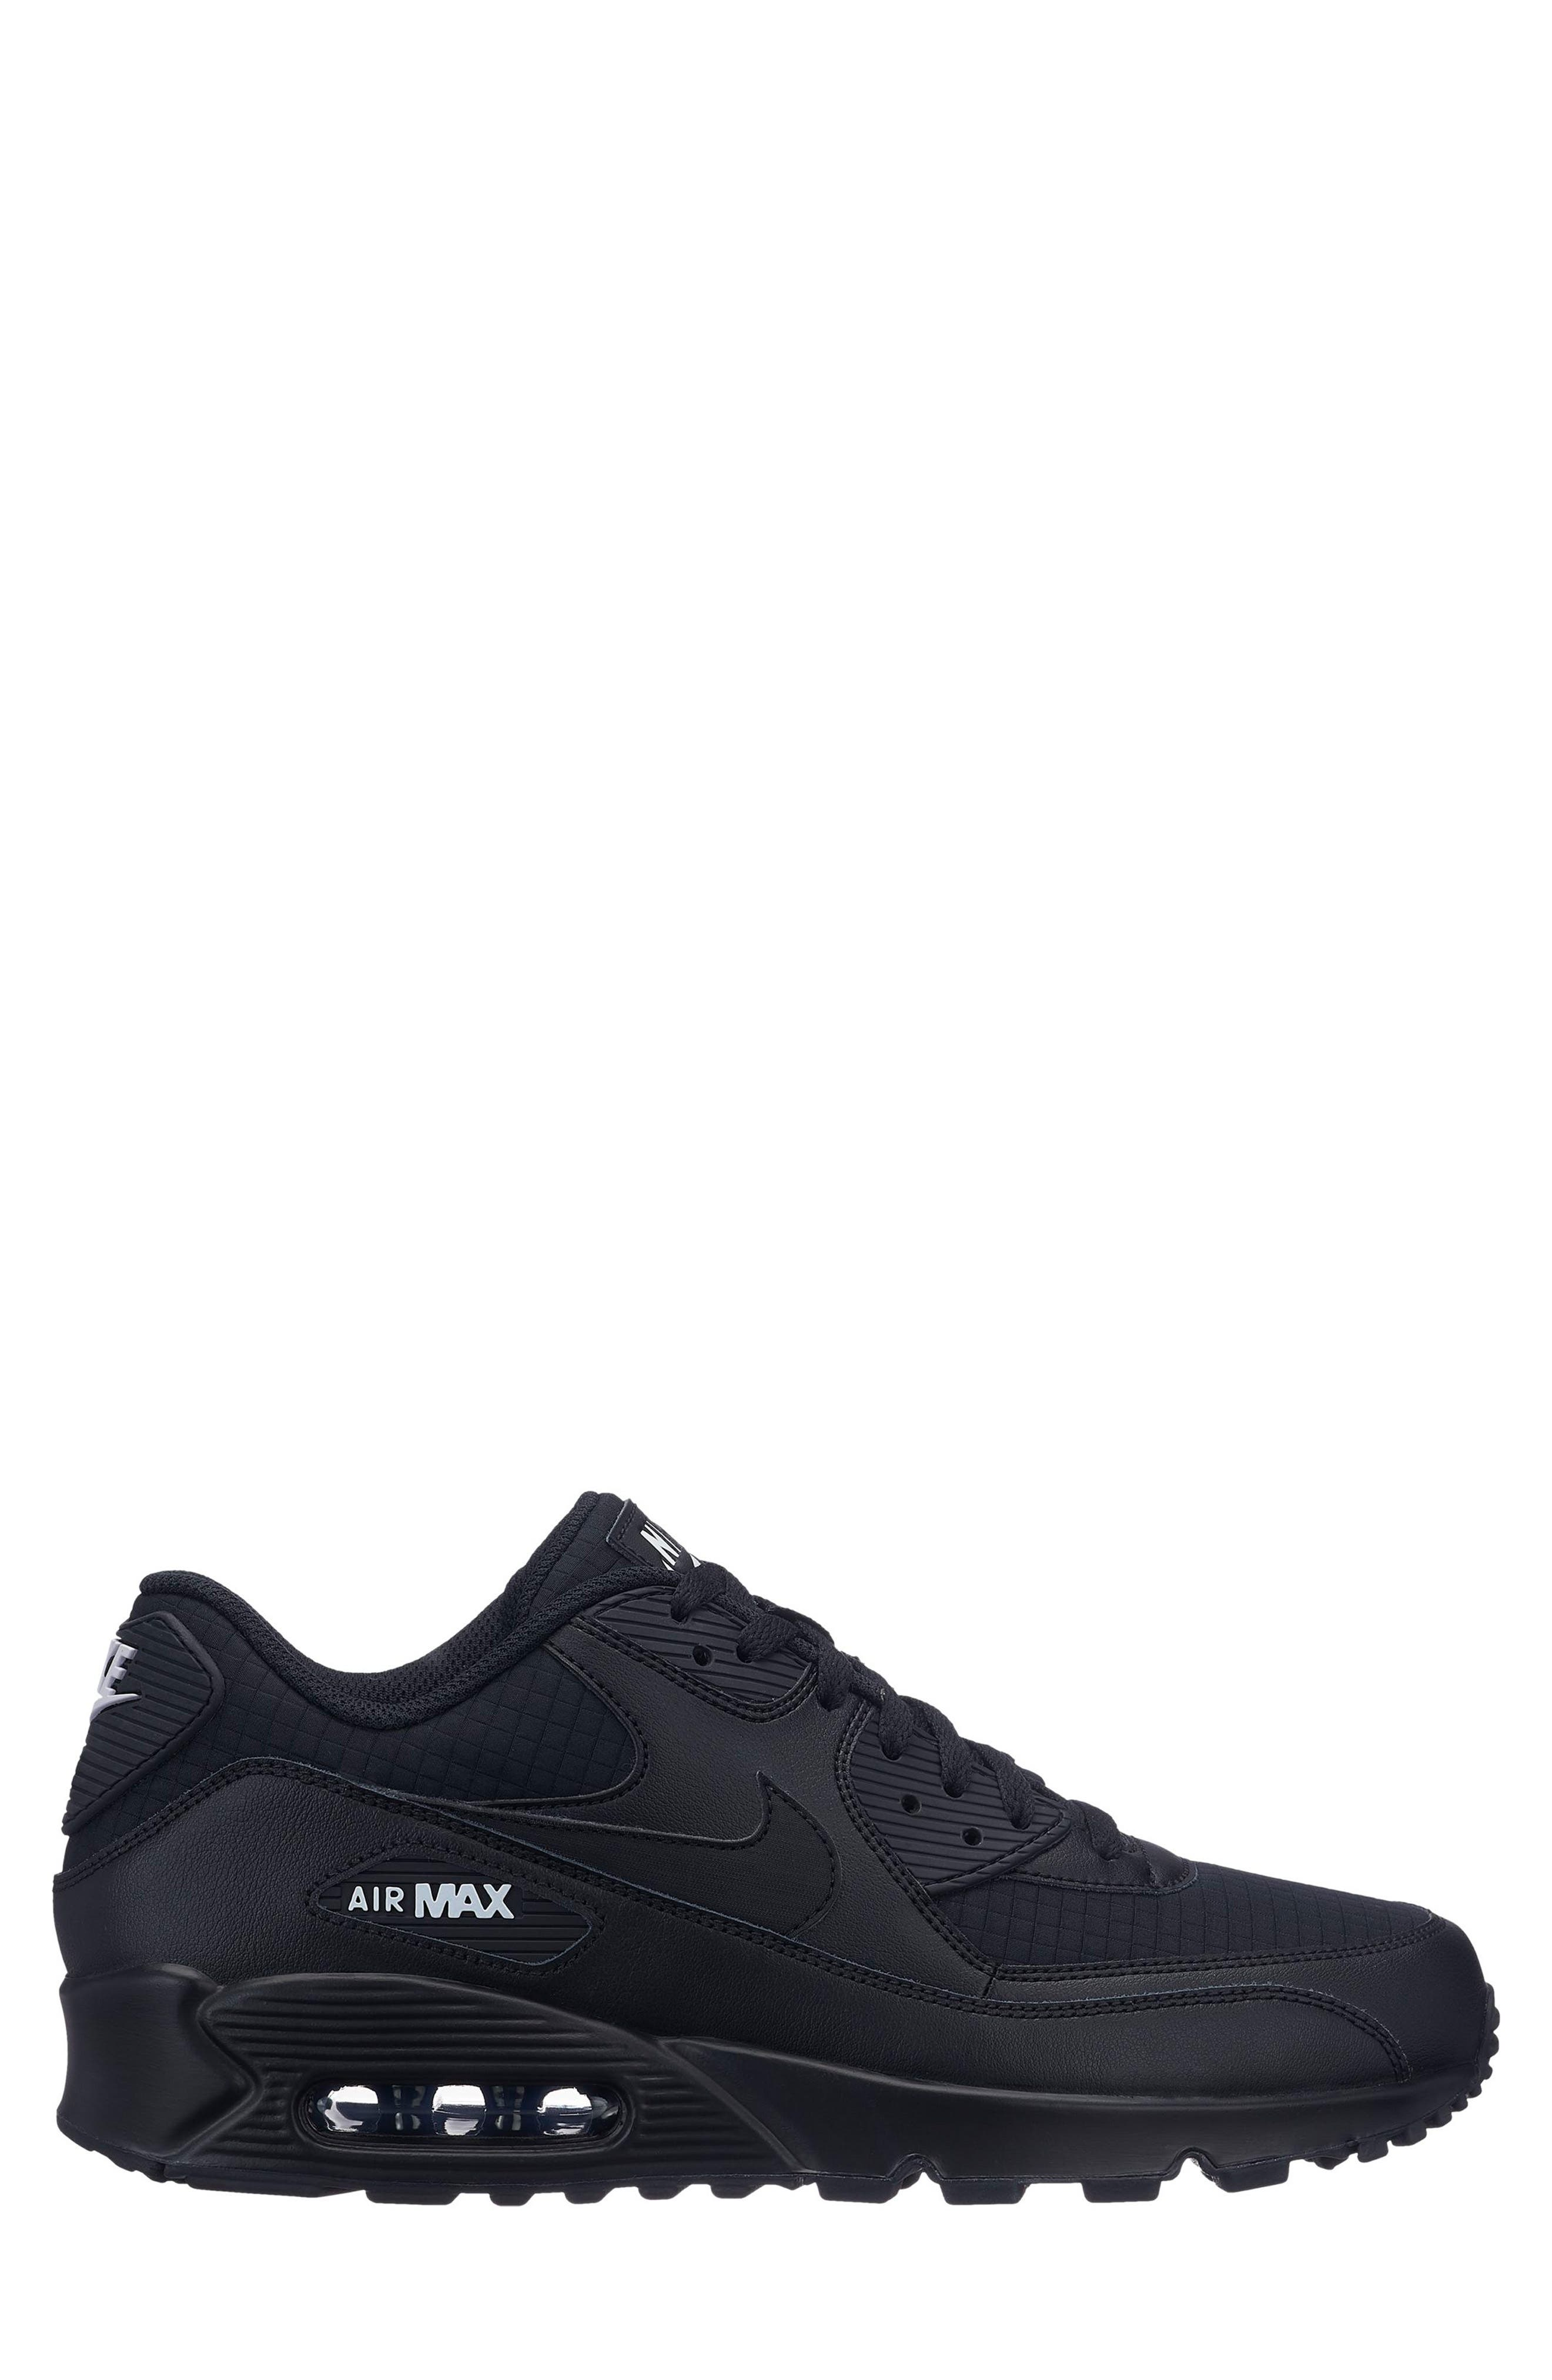 new product 51514 7f246 ... closeout nike air max 90 essential sneaker men 29483 68865